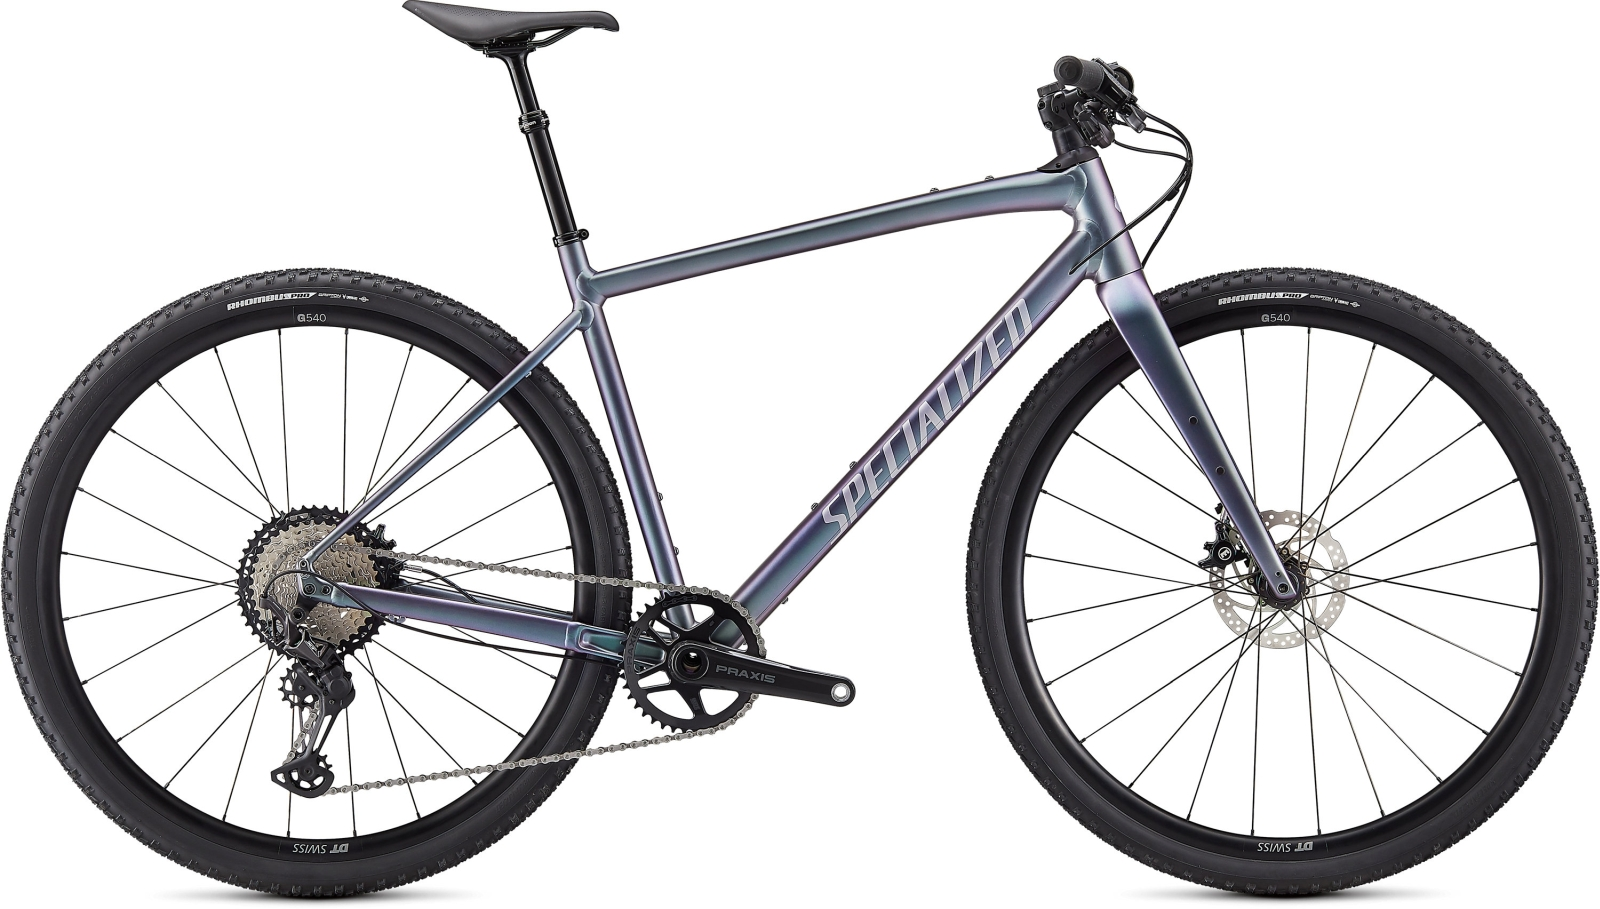 Specialized Diverge E5 Expert Evo -Gloss/Brushed/Chrome/Clean L